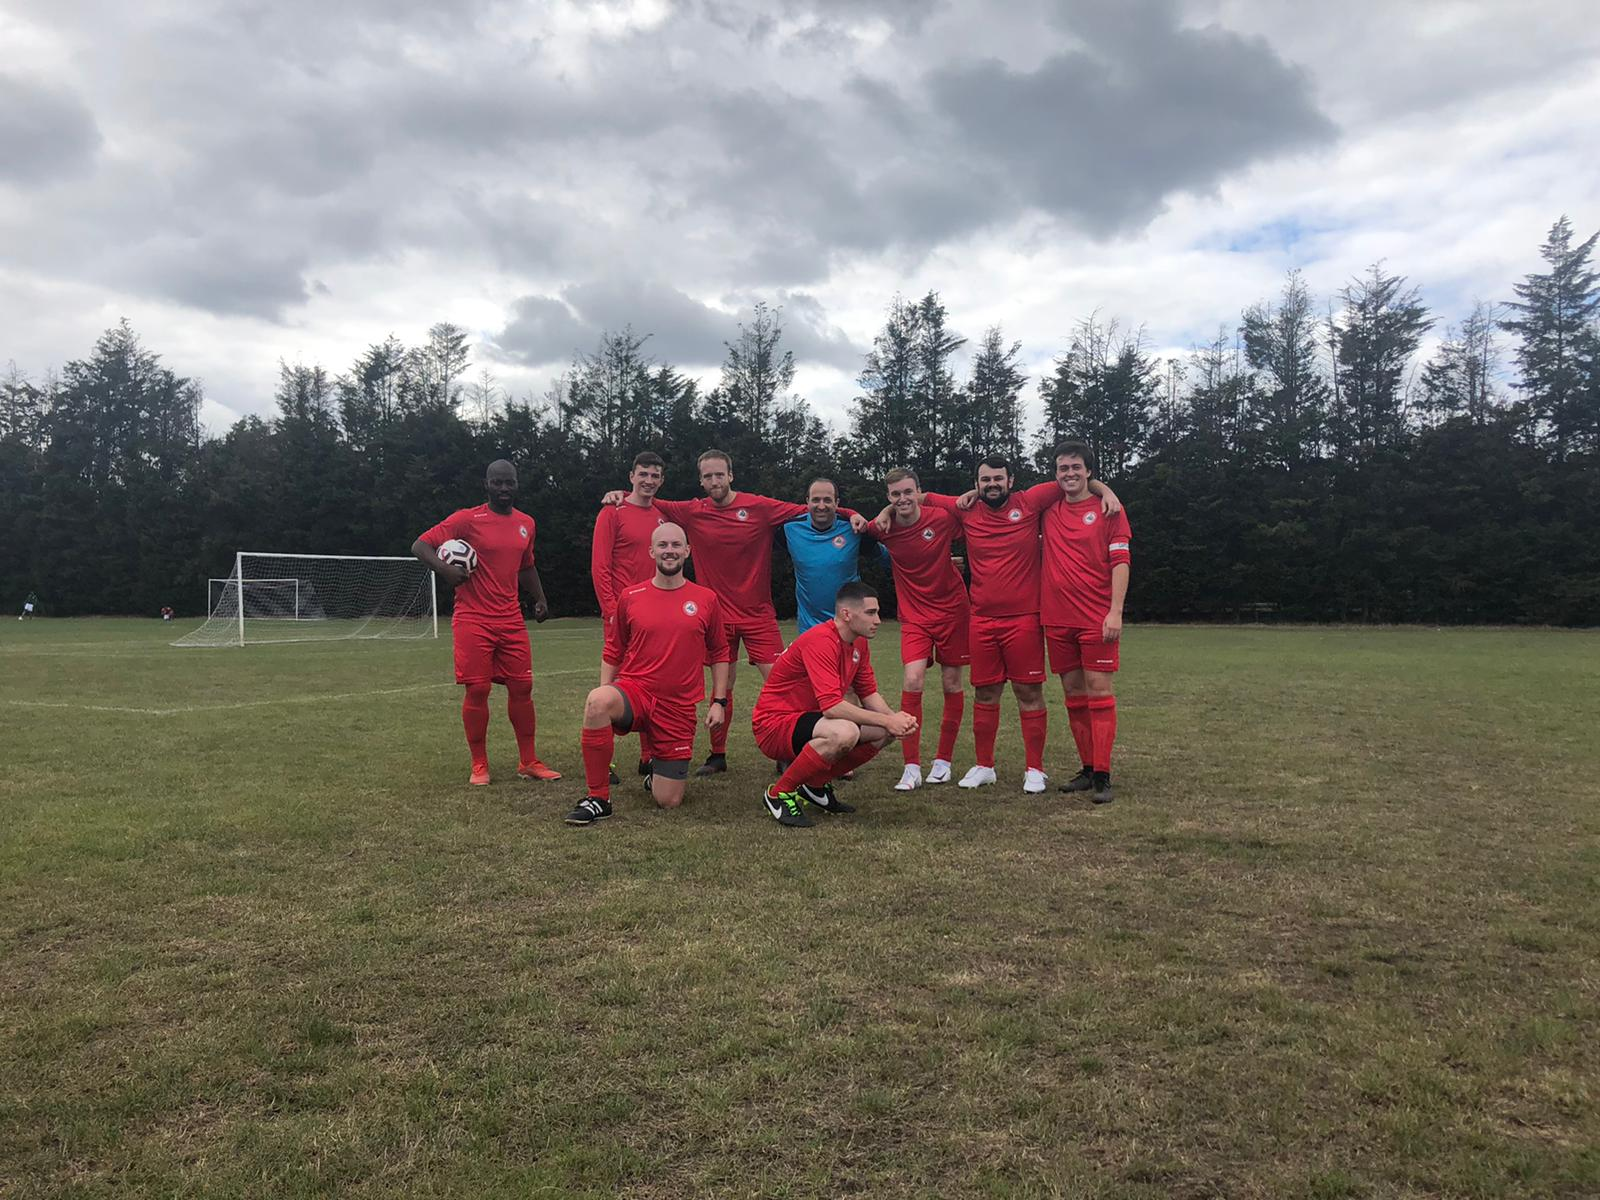 A team photo of my sunday league football team, several pulling silly faces or poses.